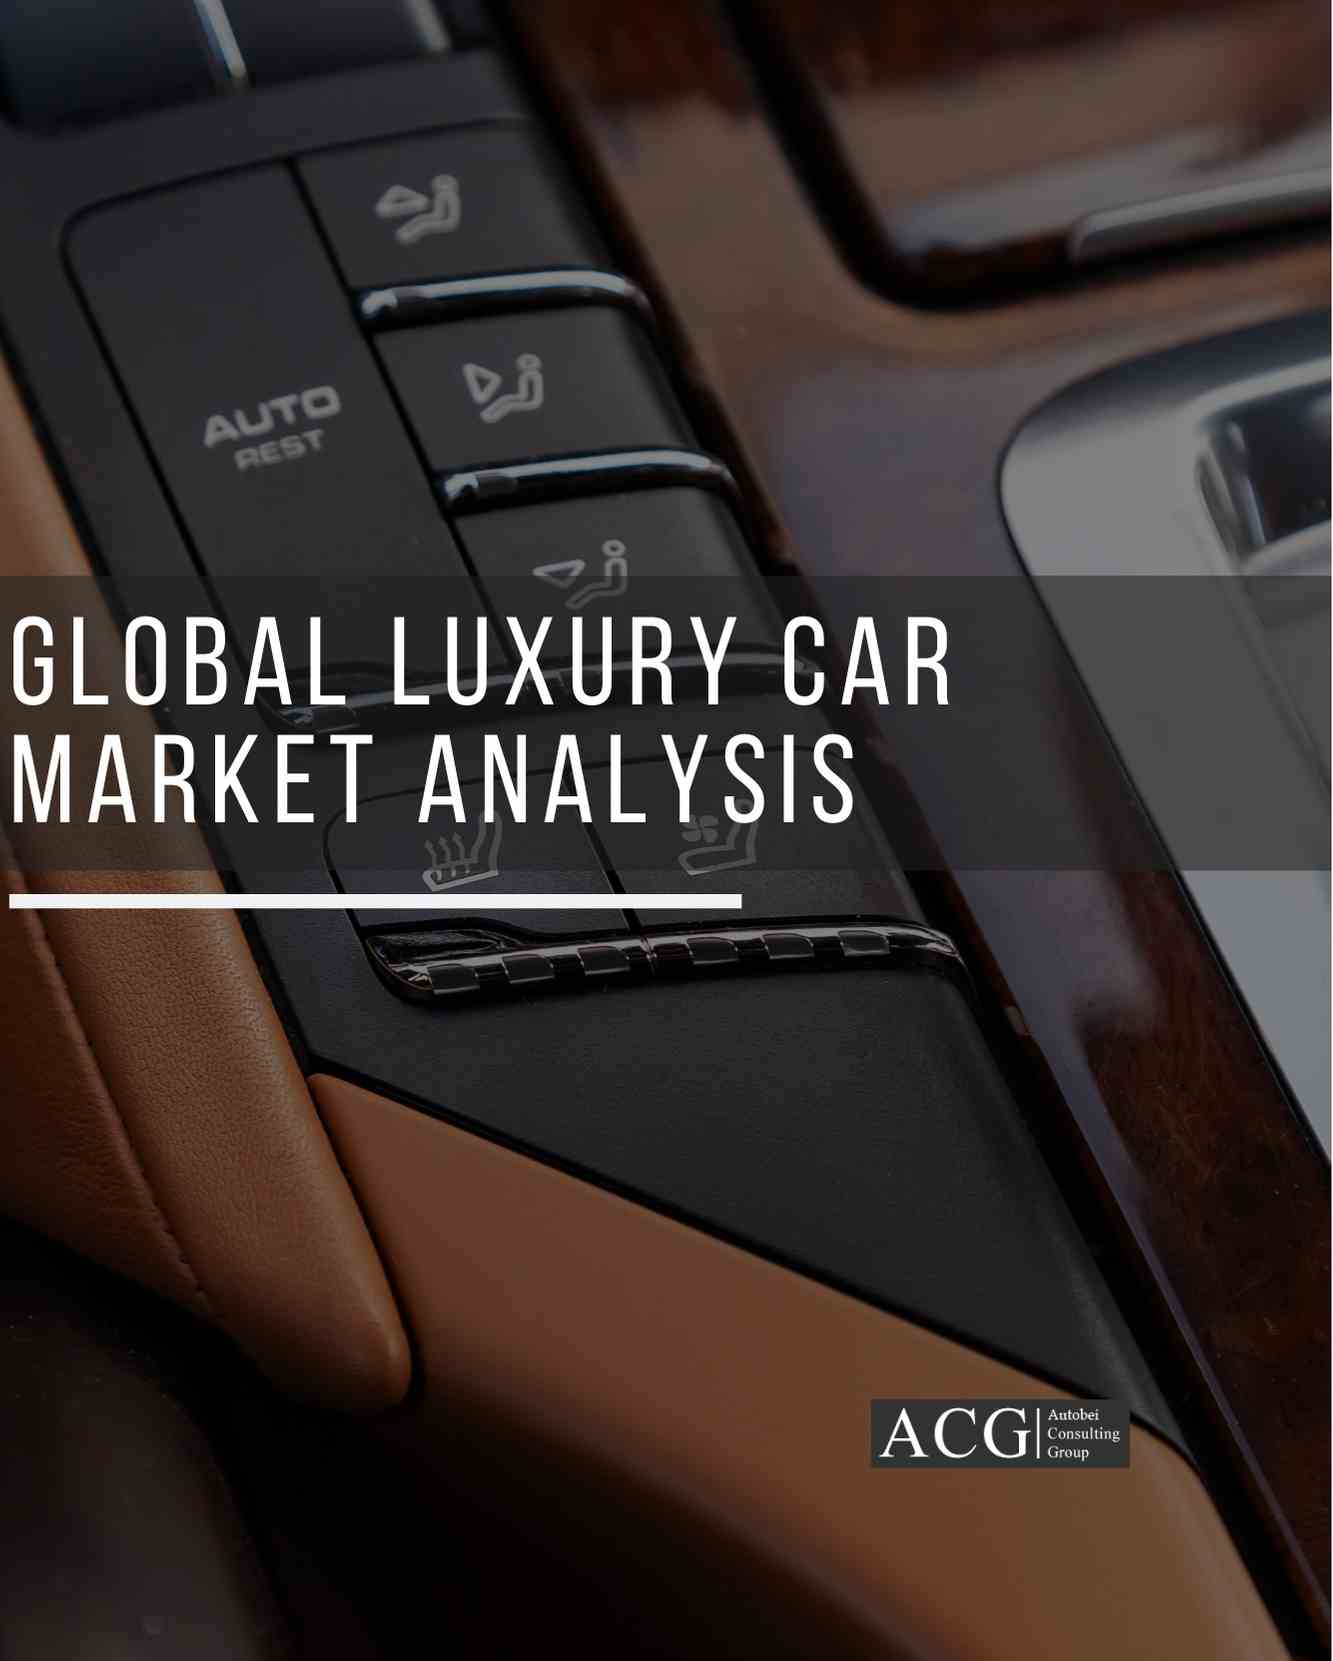 Global Luxury Car Market Analysis